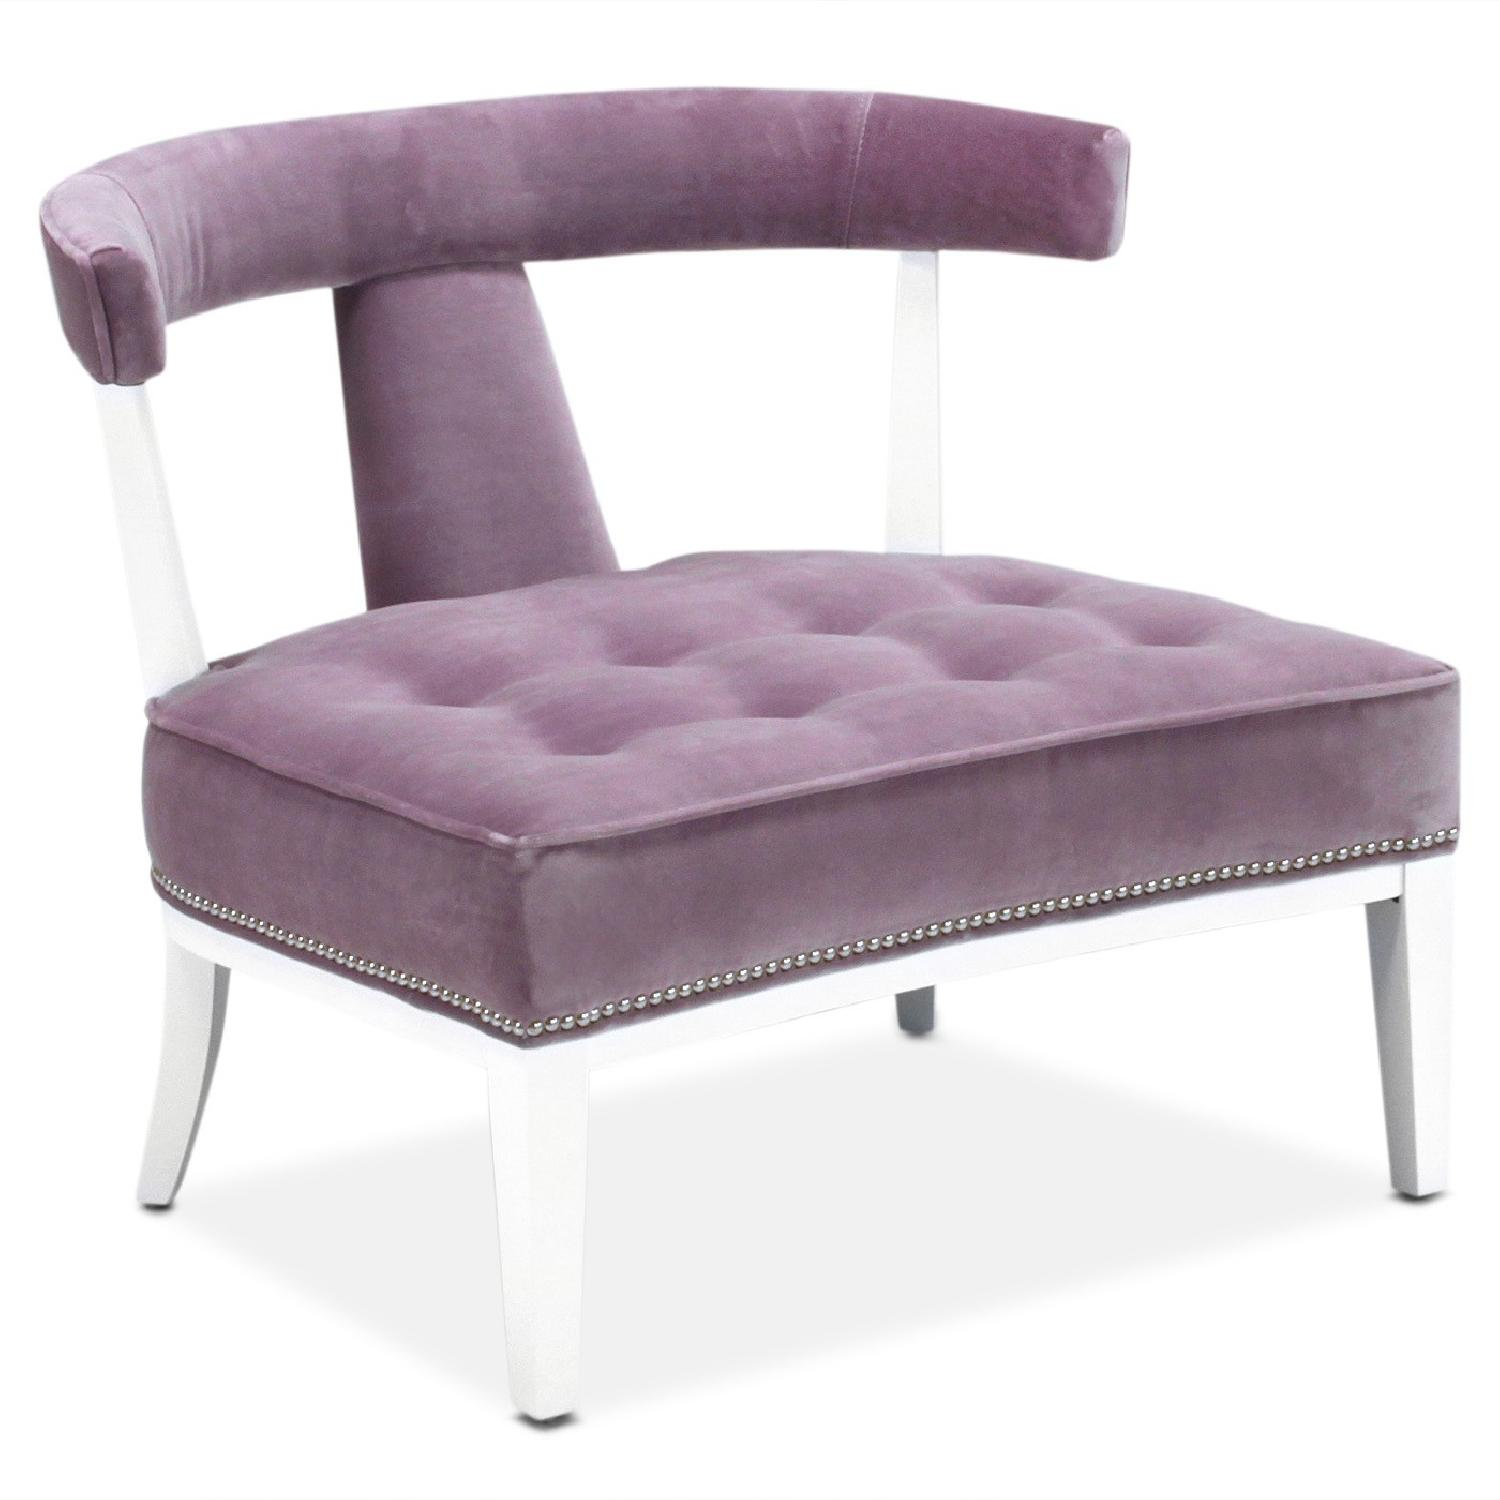 Jonathan Adler Addison Chair - image-1